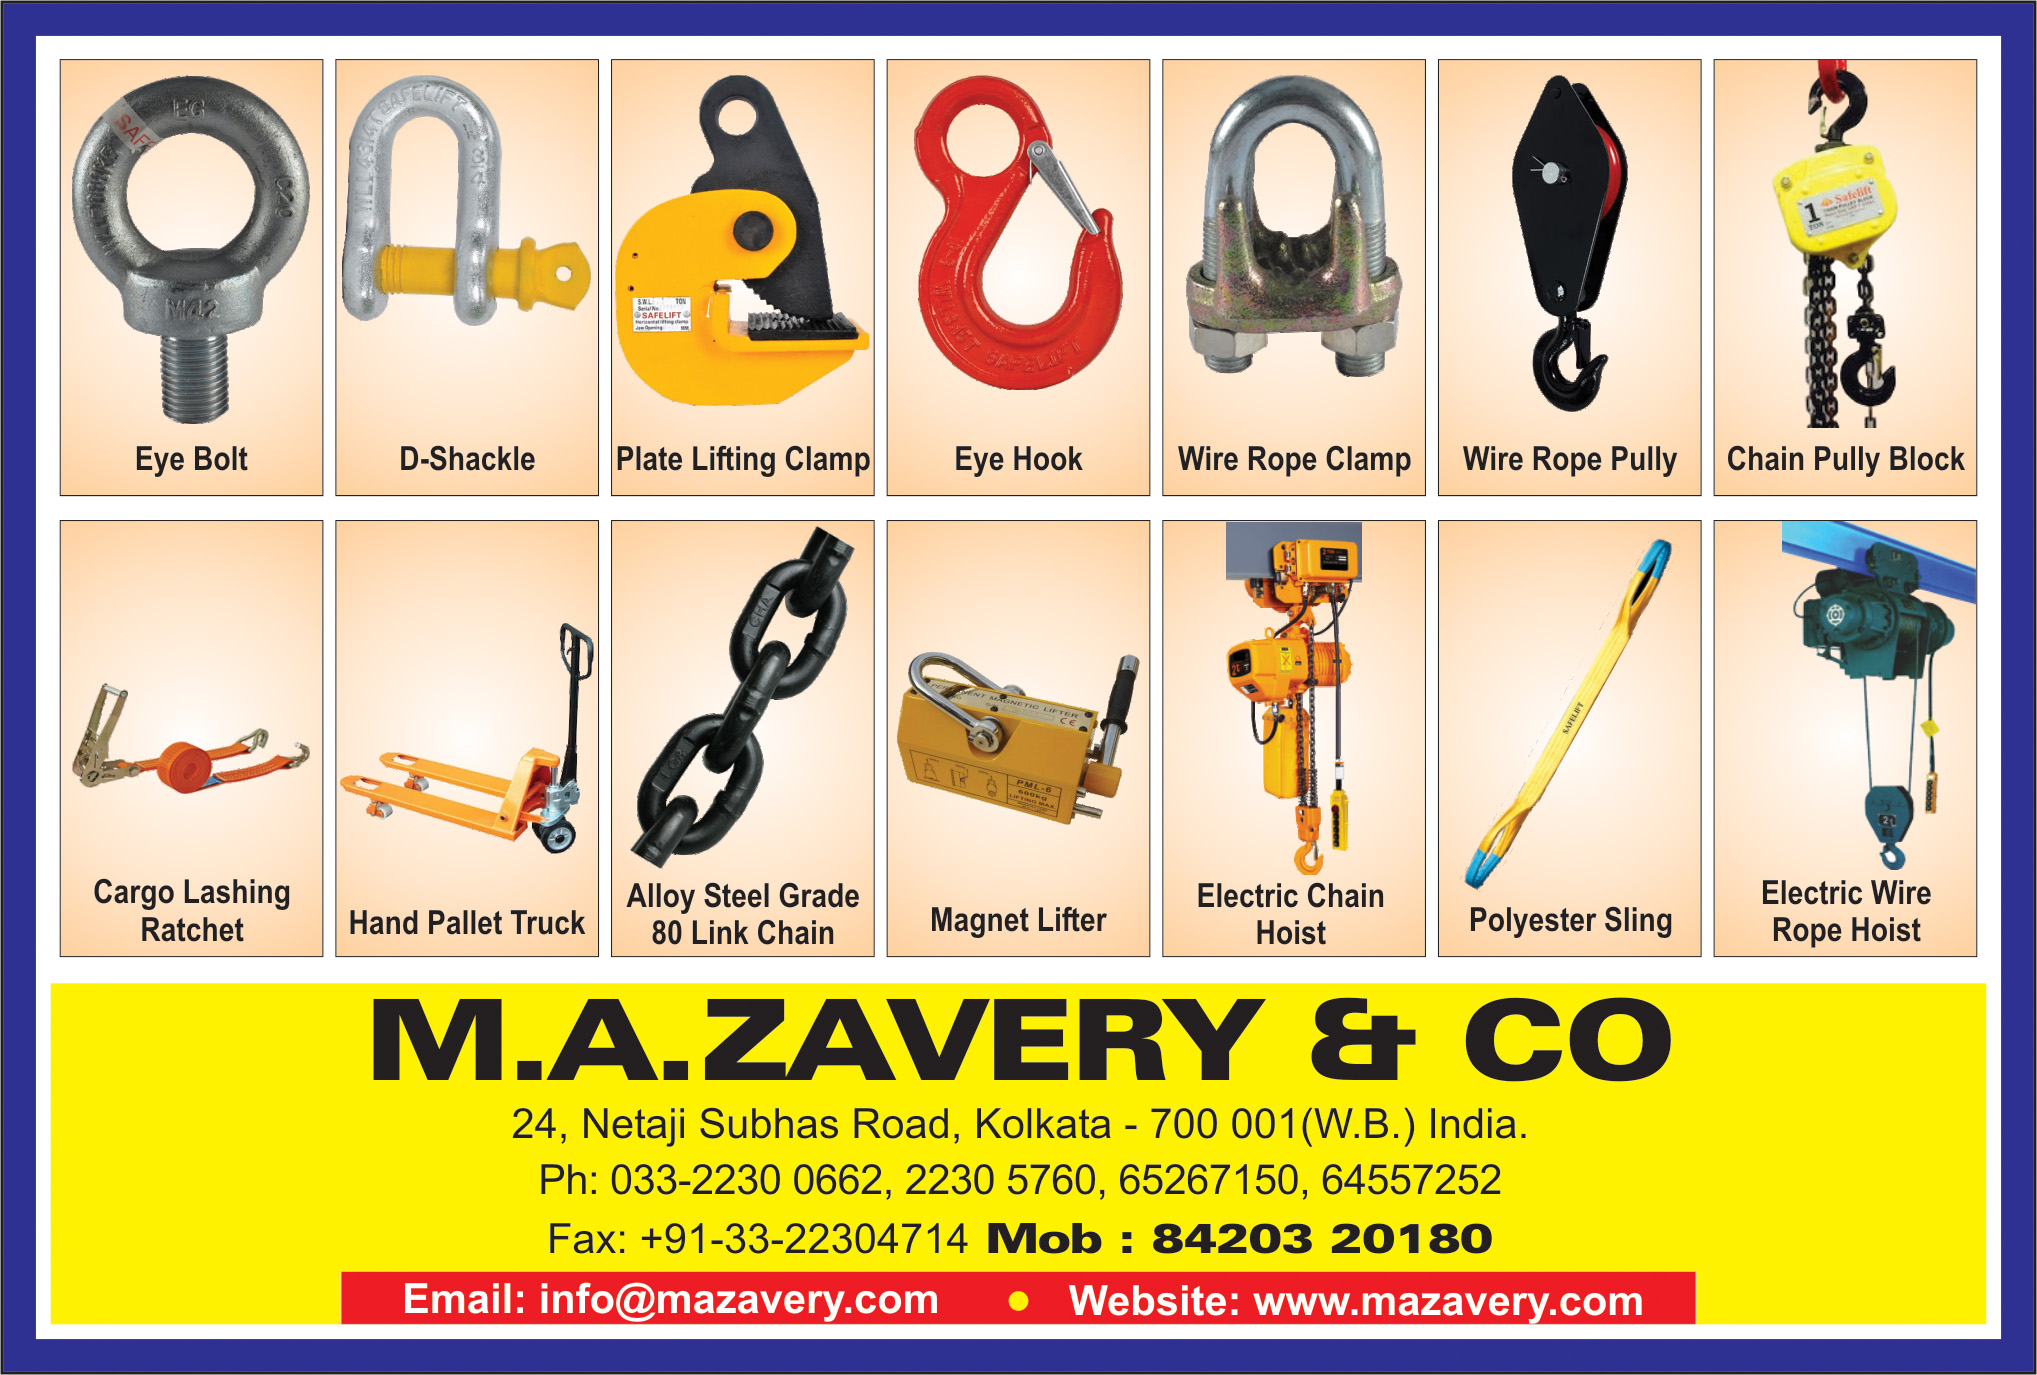 Printers Offset and Binding, M A ZAVERY & CO, Kolkata,  Yellow Pages, Kolkata, West Bengal